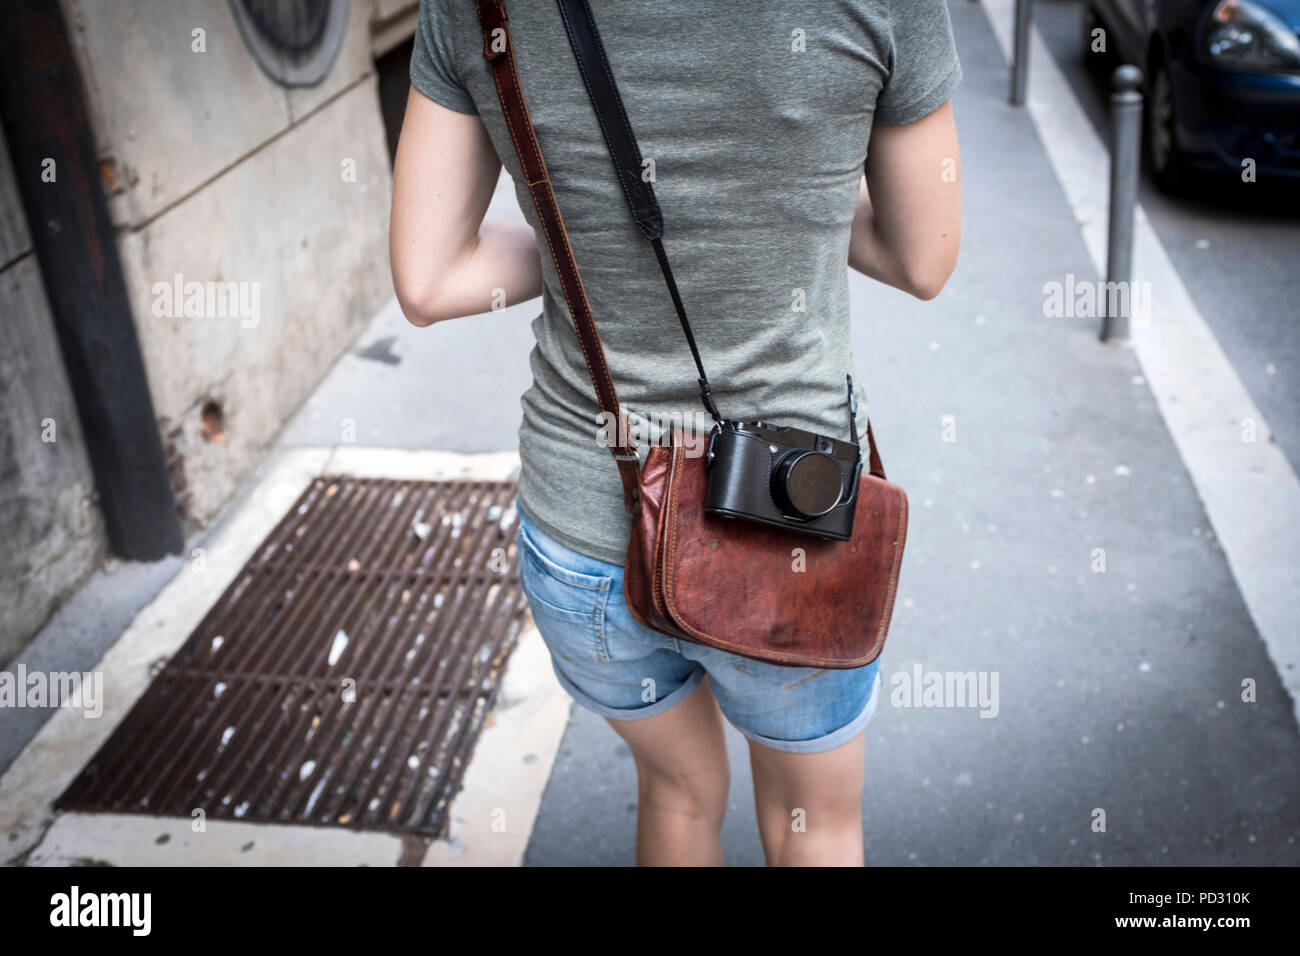 Young woman with leather handbag and retro camera walking - Stock Image